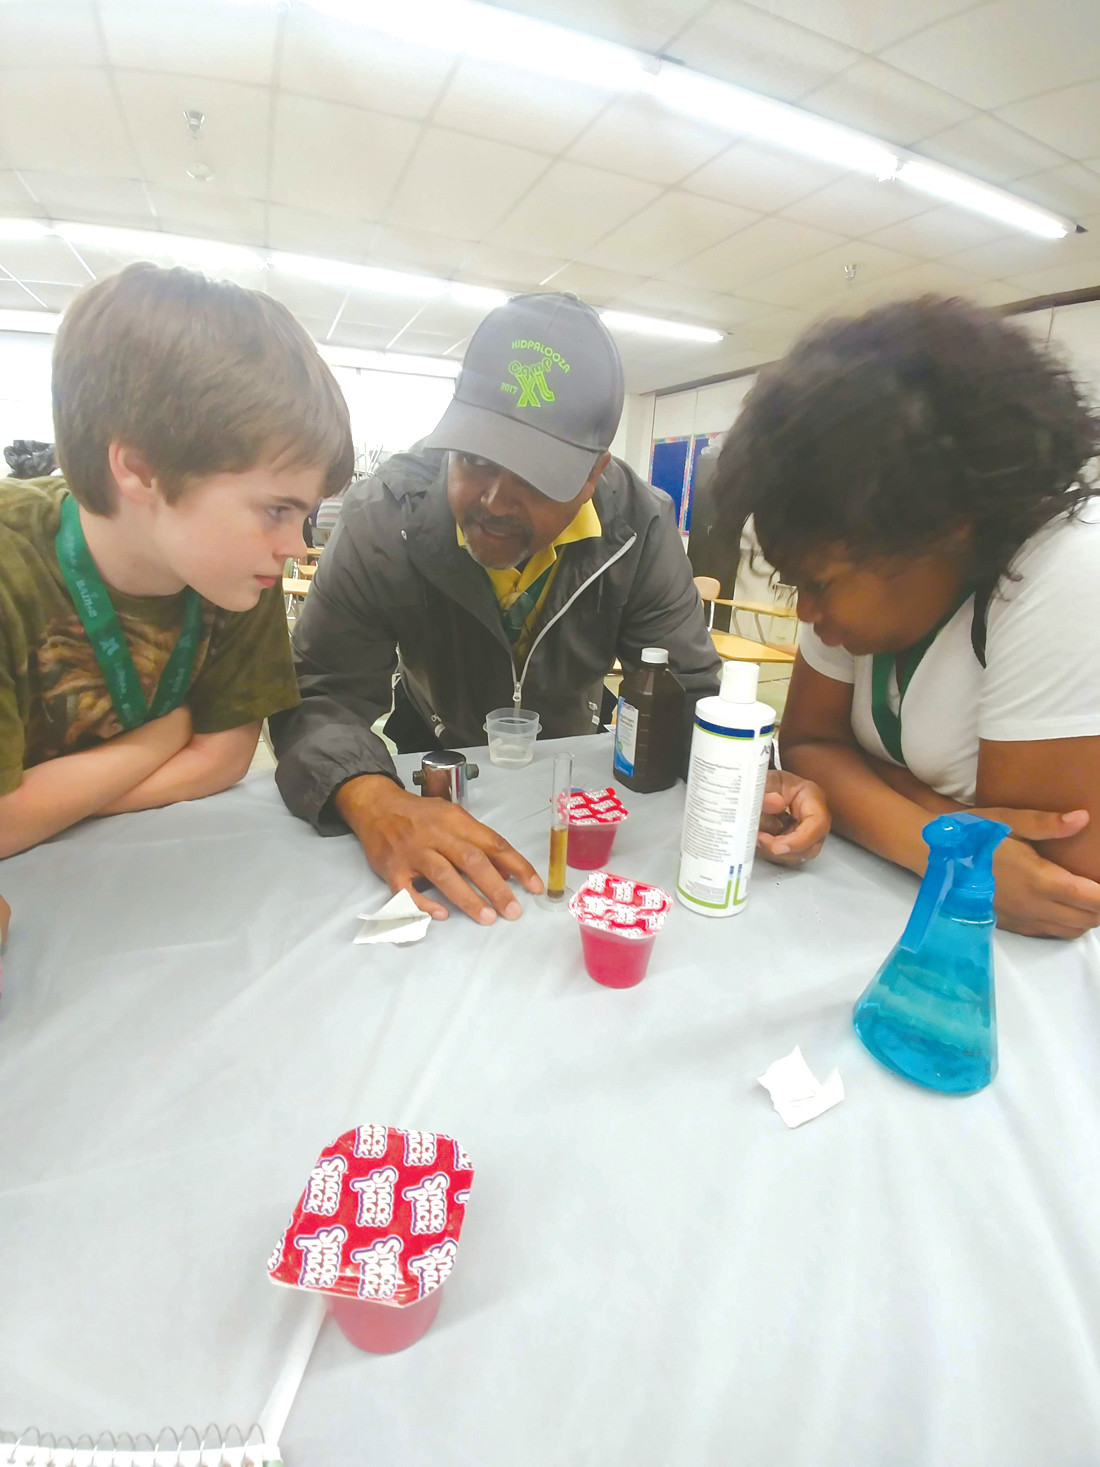 WILL IT WORK: Dr. Jesse Jordan and two of his students, Nyleiha McCants Snead and James Seal examine a solution being used in a jello experiment.